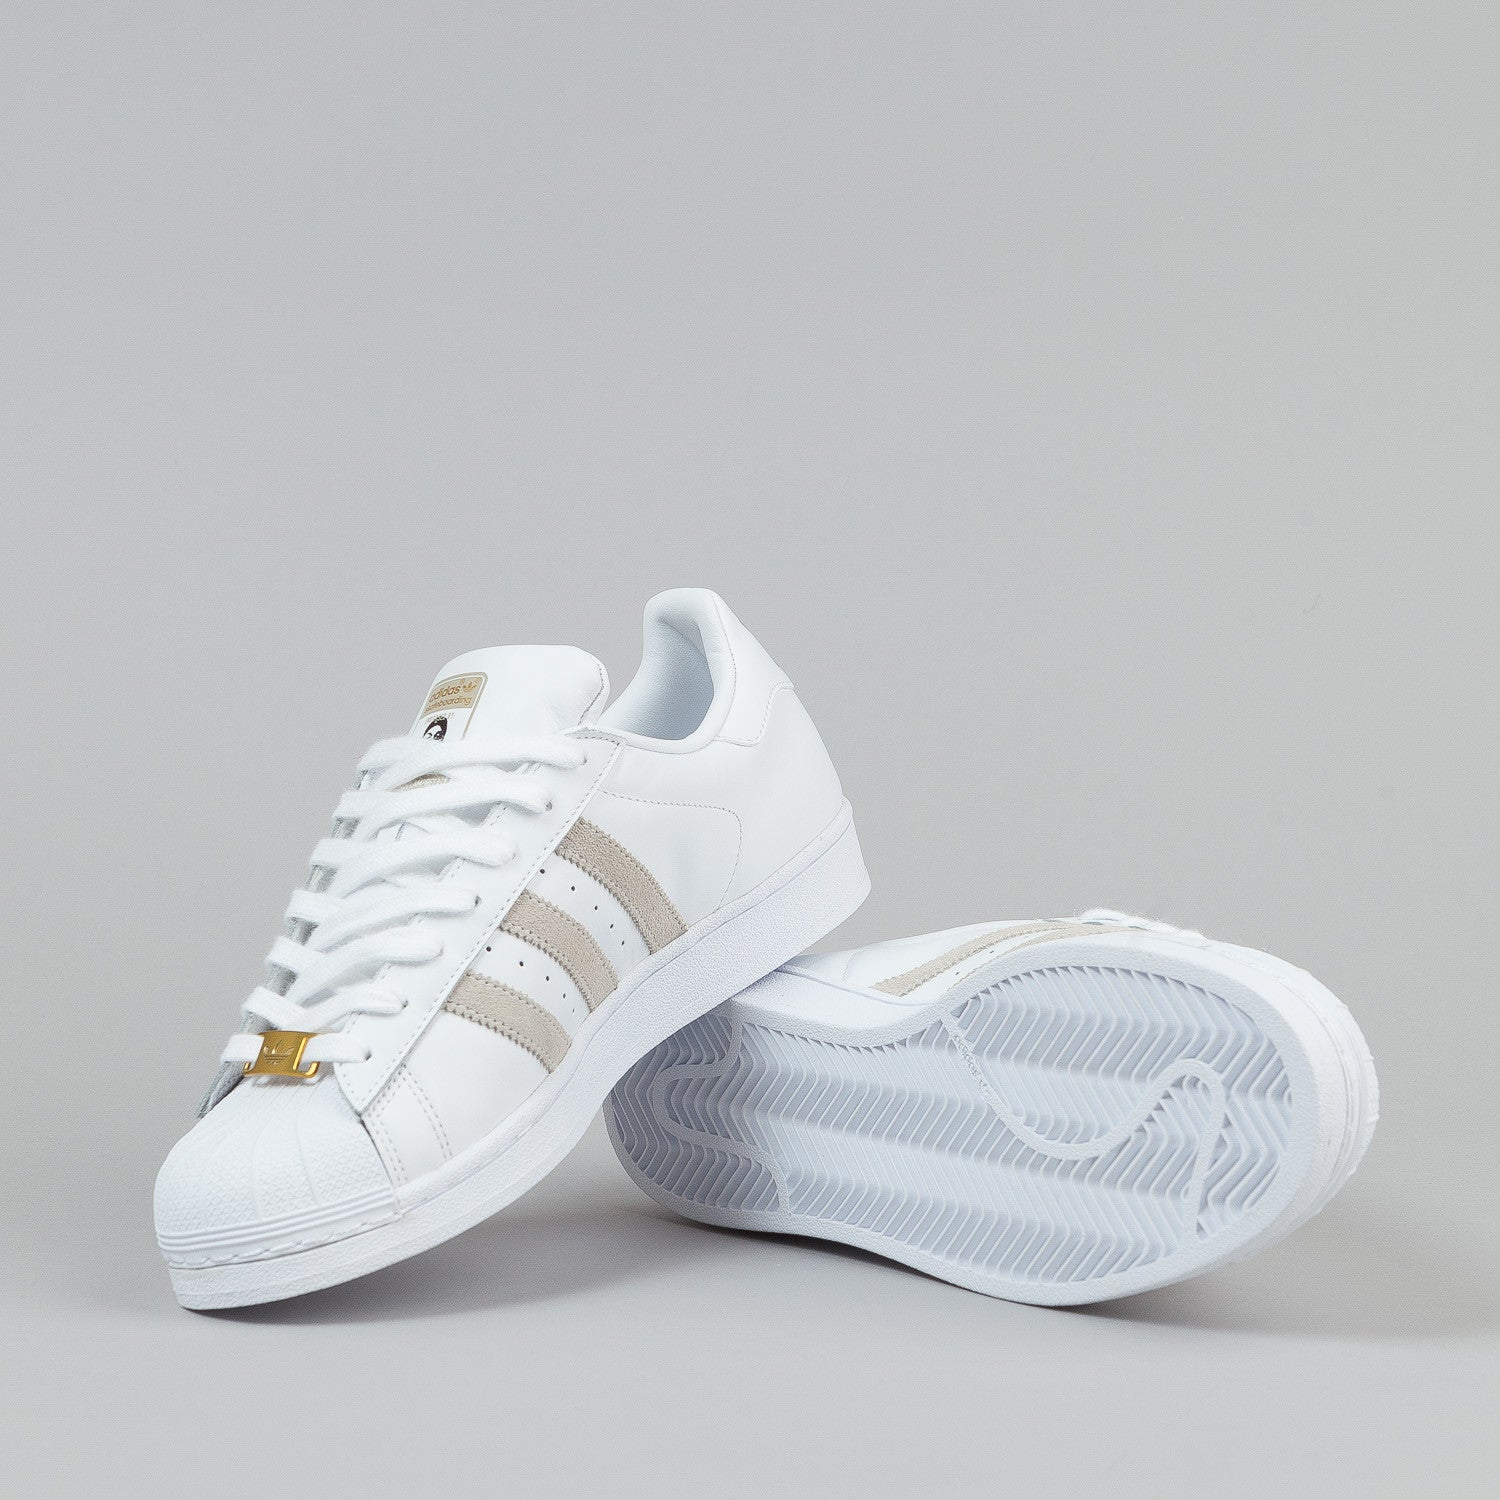 adidas superstar rose gold 38